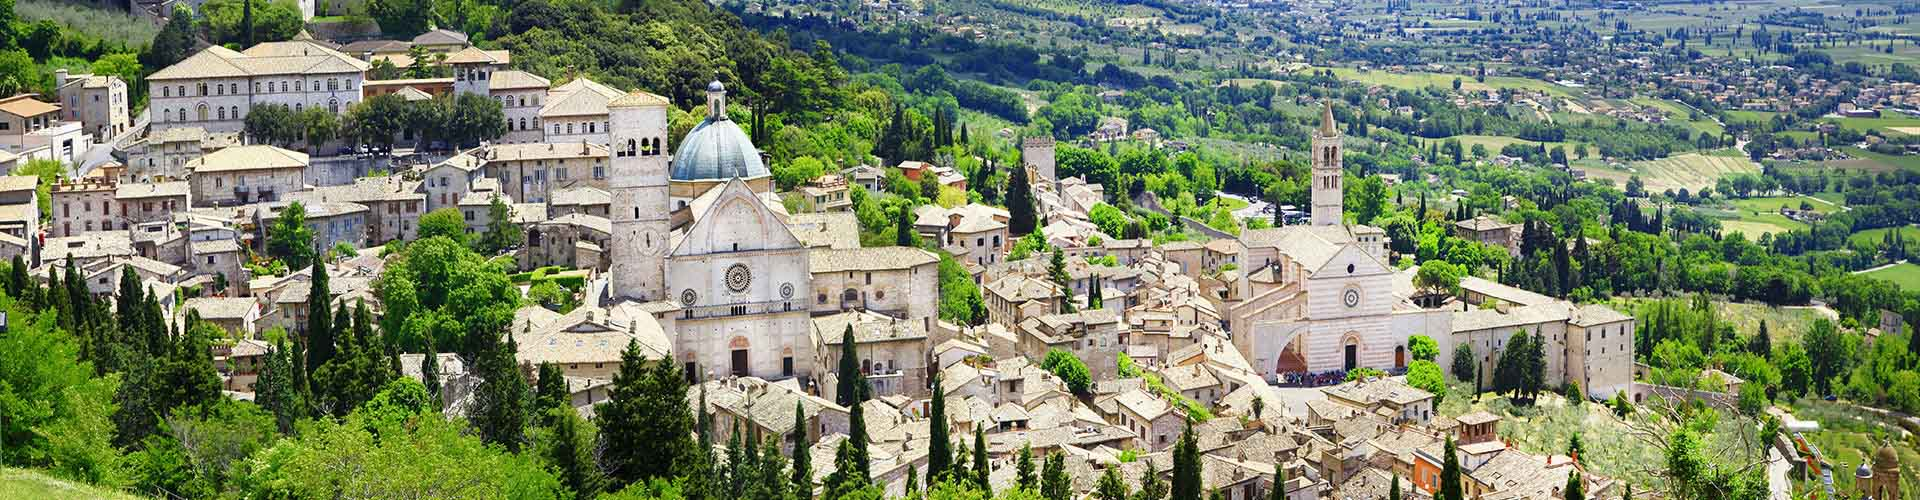 Assisi – Hostels in Assisi. Maps for Assisi, Photos and Reviews for each hostel in Assisi.